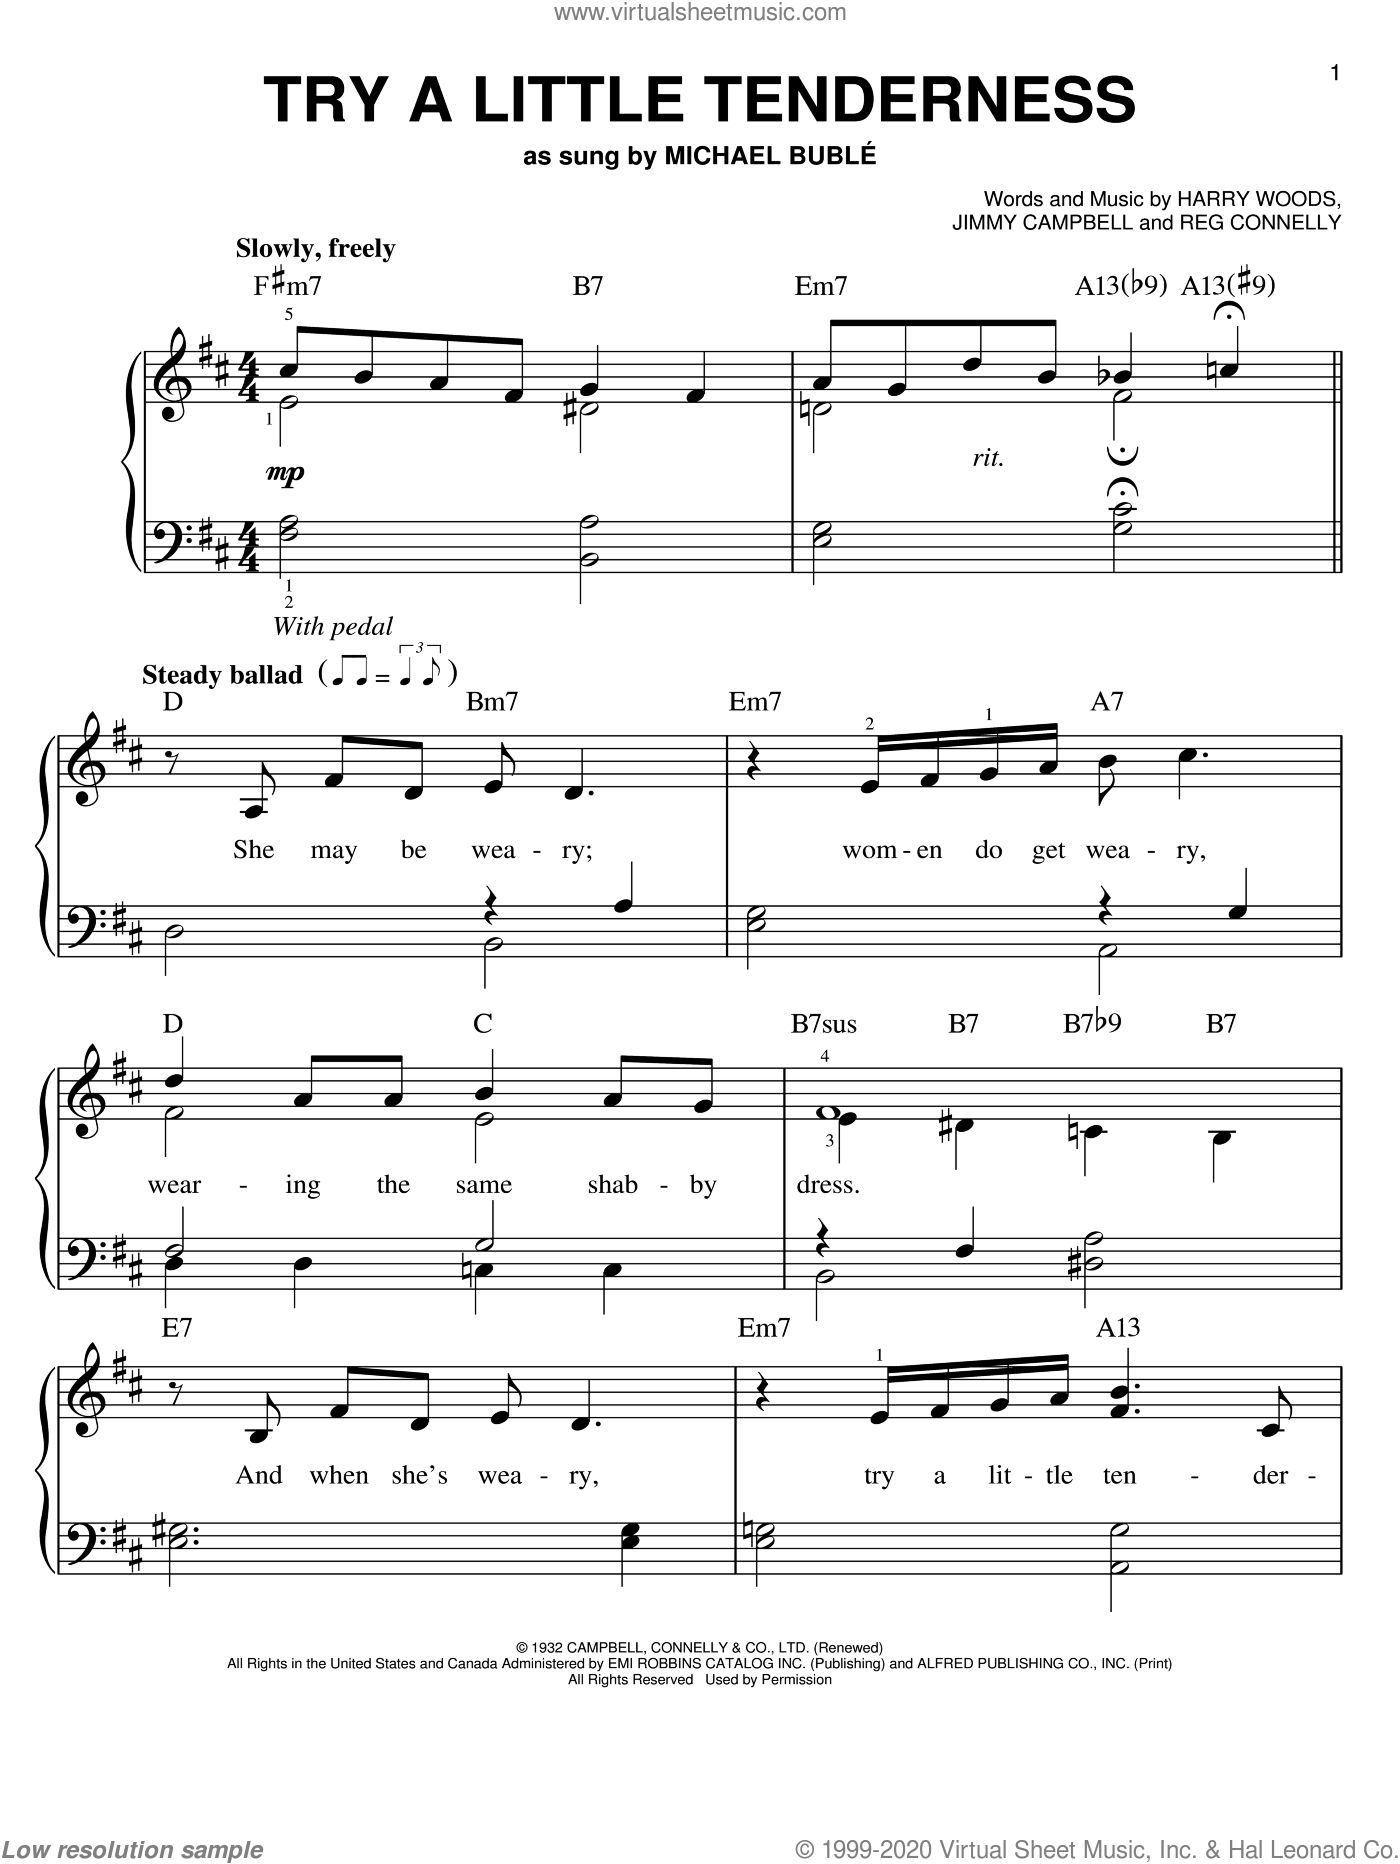 Try A Little Tenderness sheet music for piano solo by Otis Redding, Harry Woods, Jimmy Campbell and Reg Connelly, easy skill level